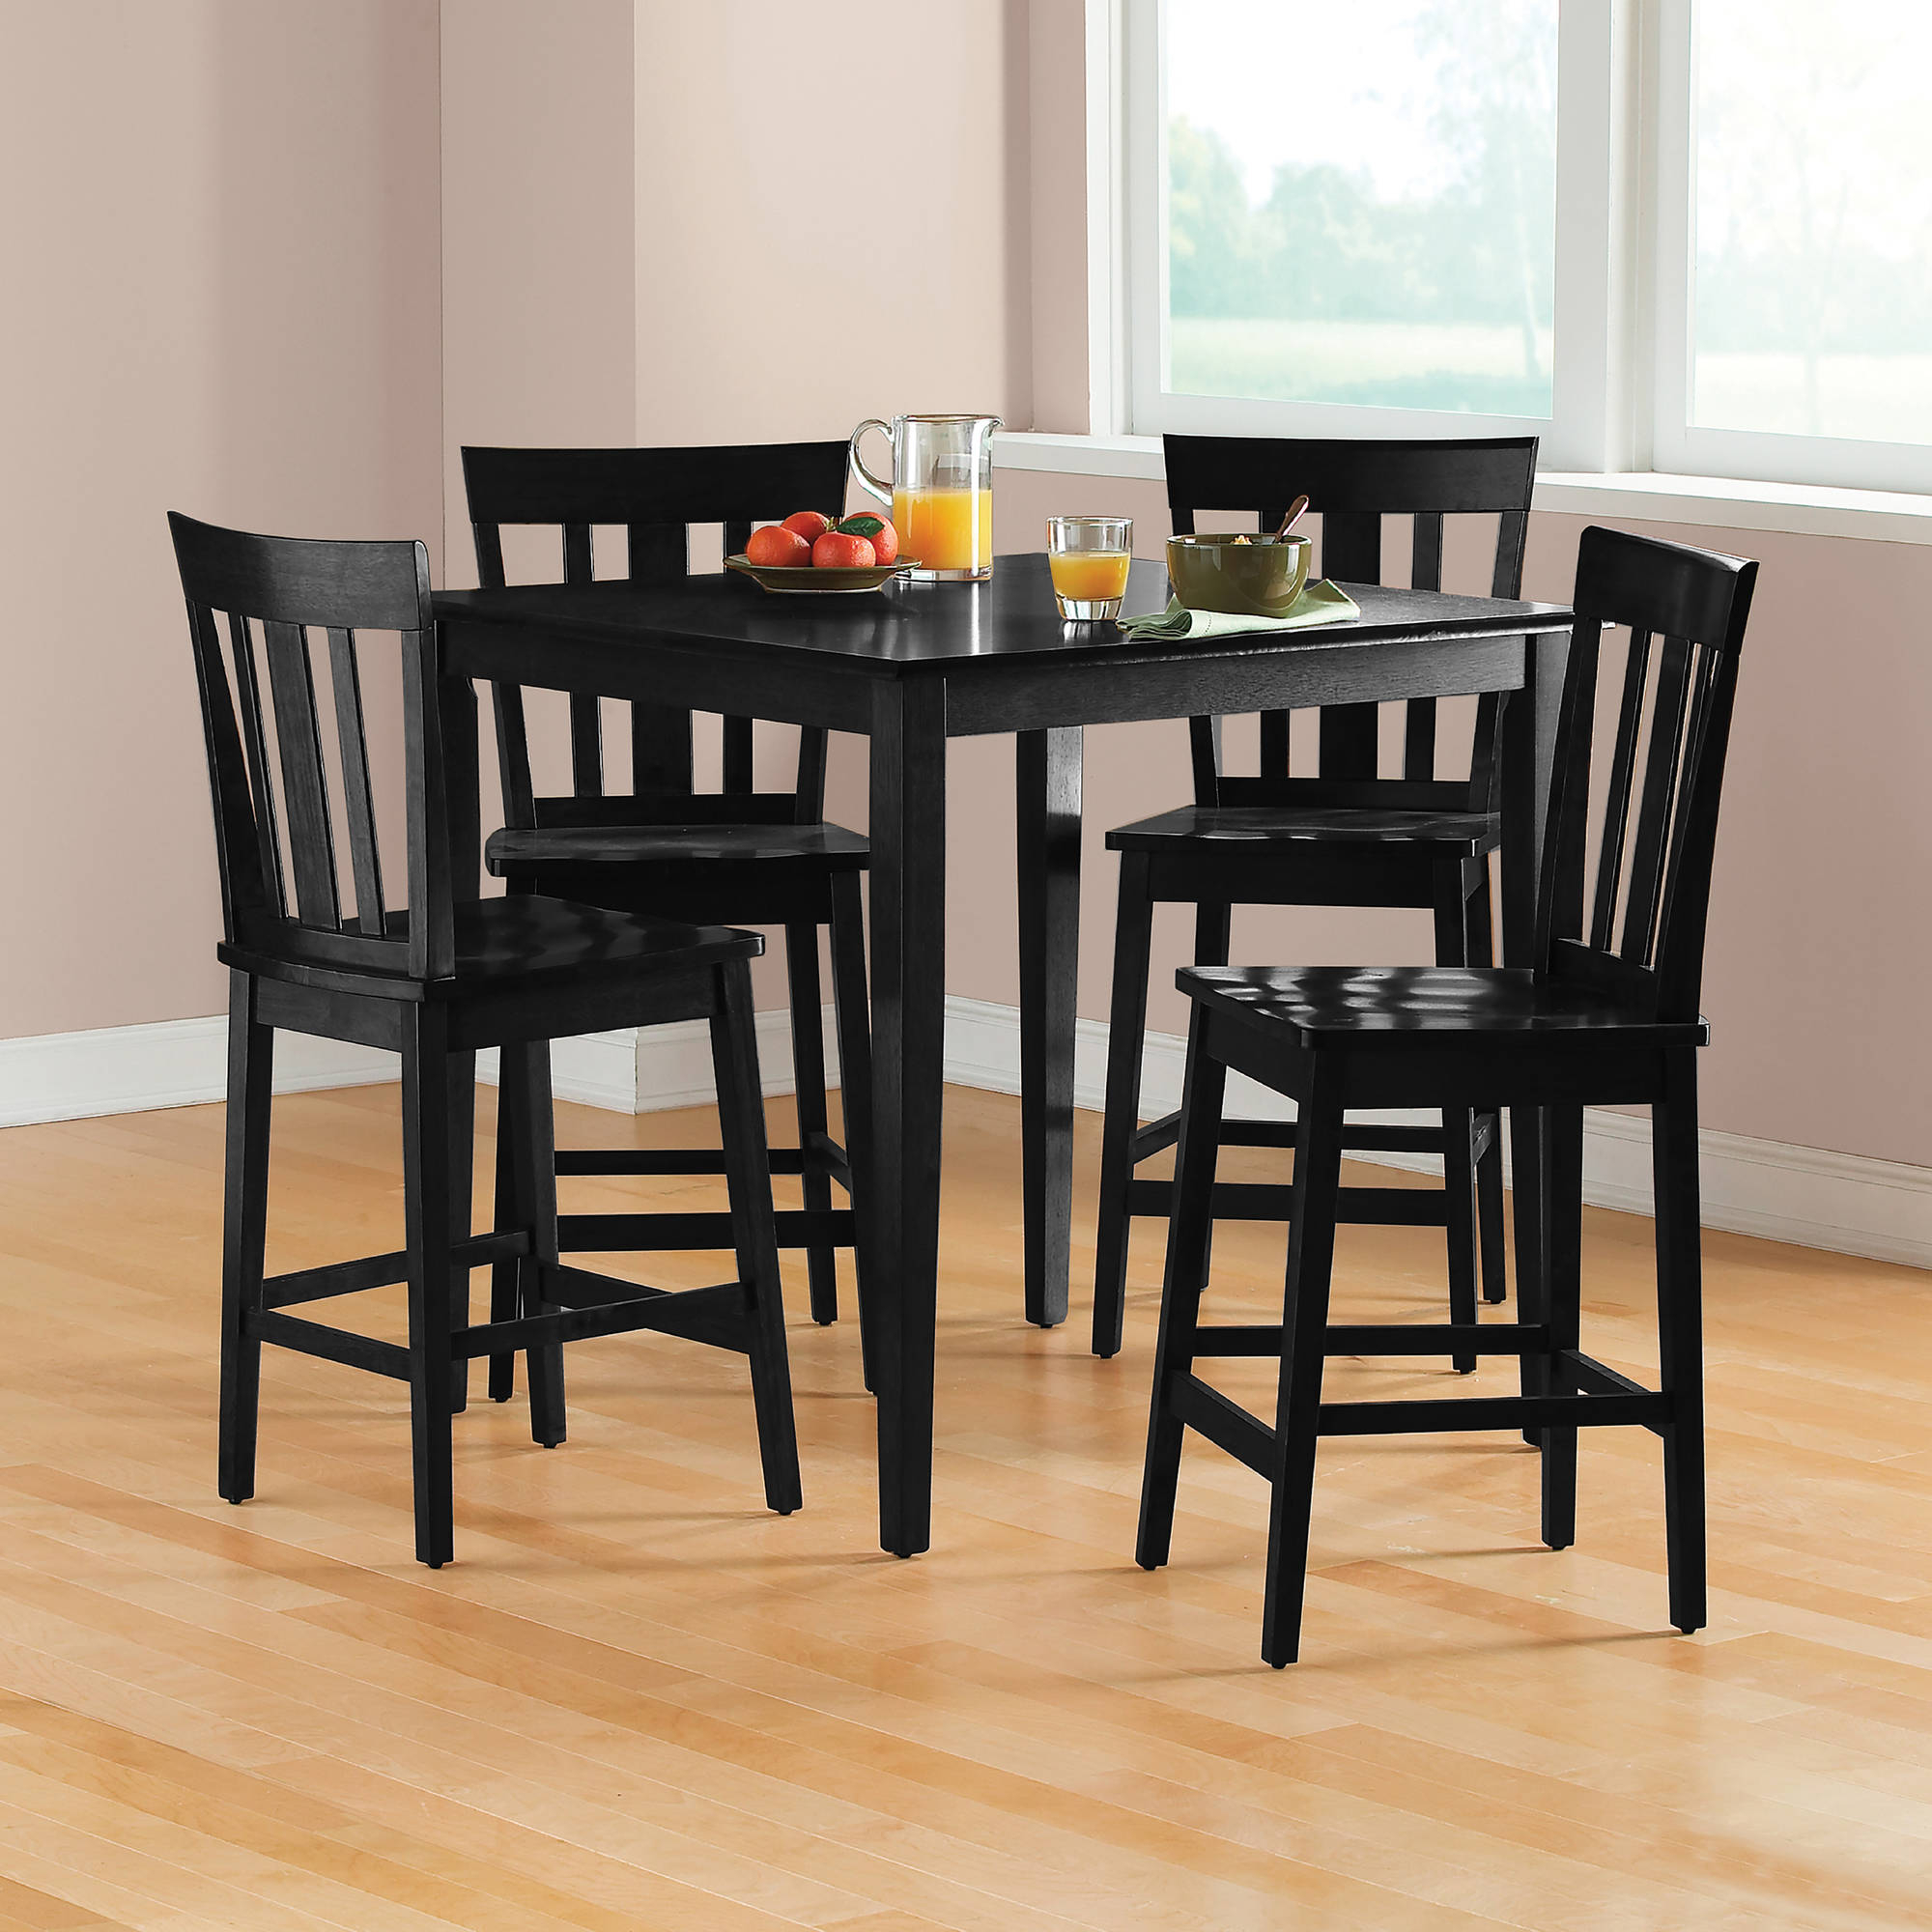 Widely Used Goodman 5 Piece Solid Wood Dining Sets (Set Of 5) Regarding Mainstays 5 Piece Mission Counter Height Dining Set – Walmart (View 19 of 20)